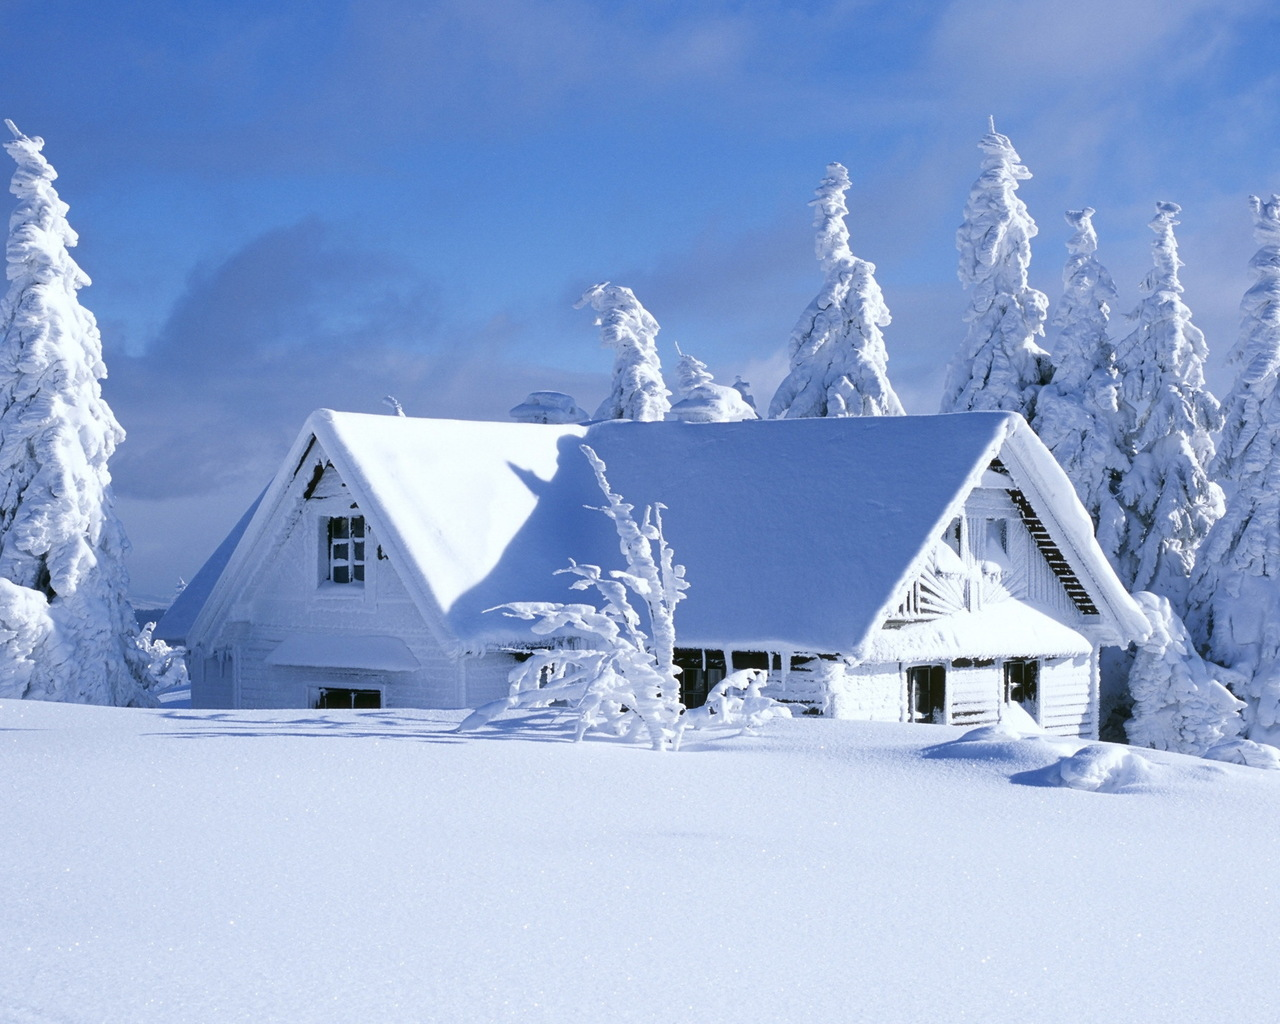 Mountain Chalet Covered with Snow